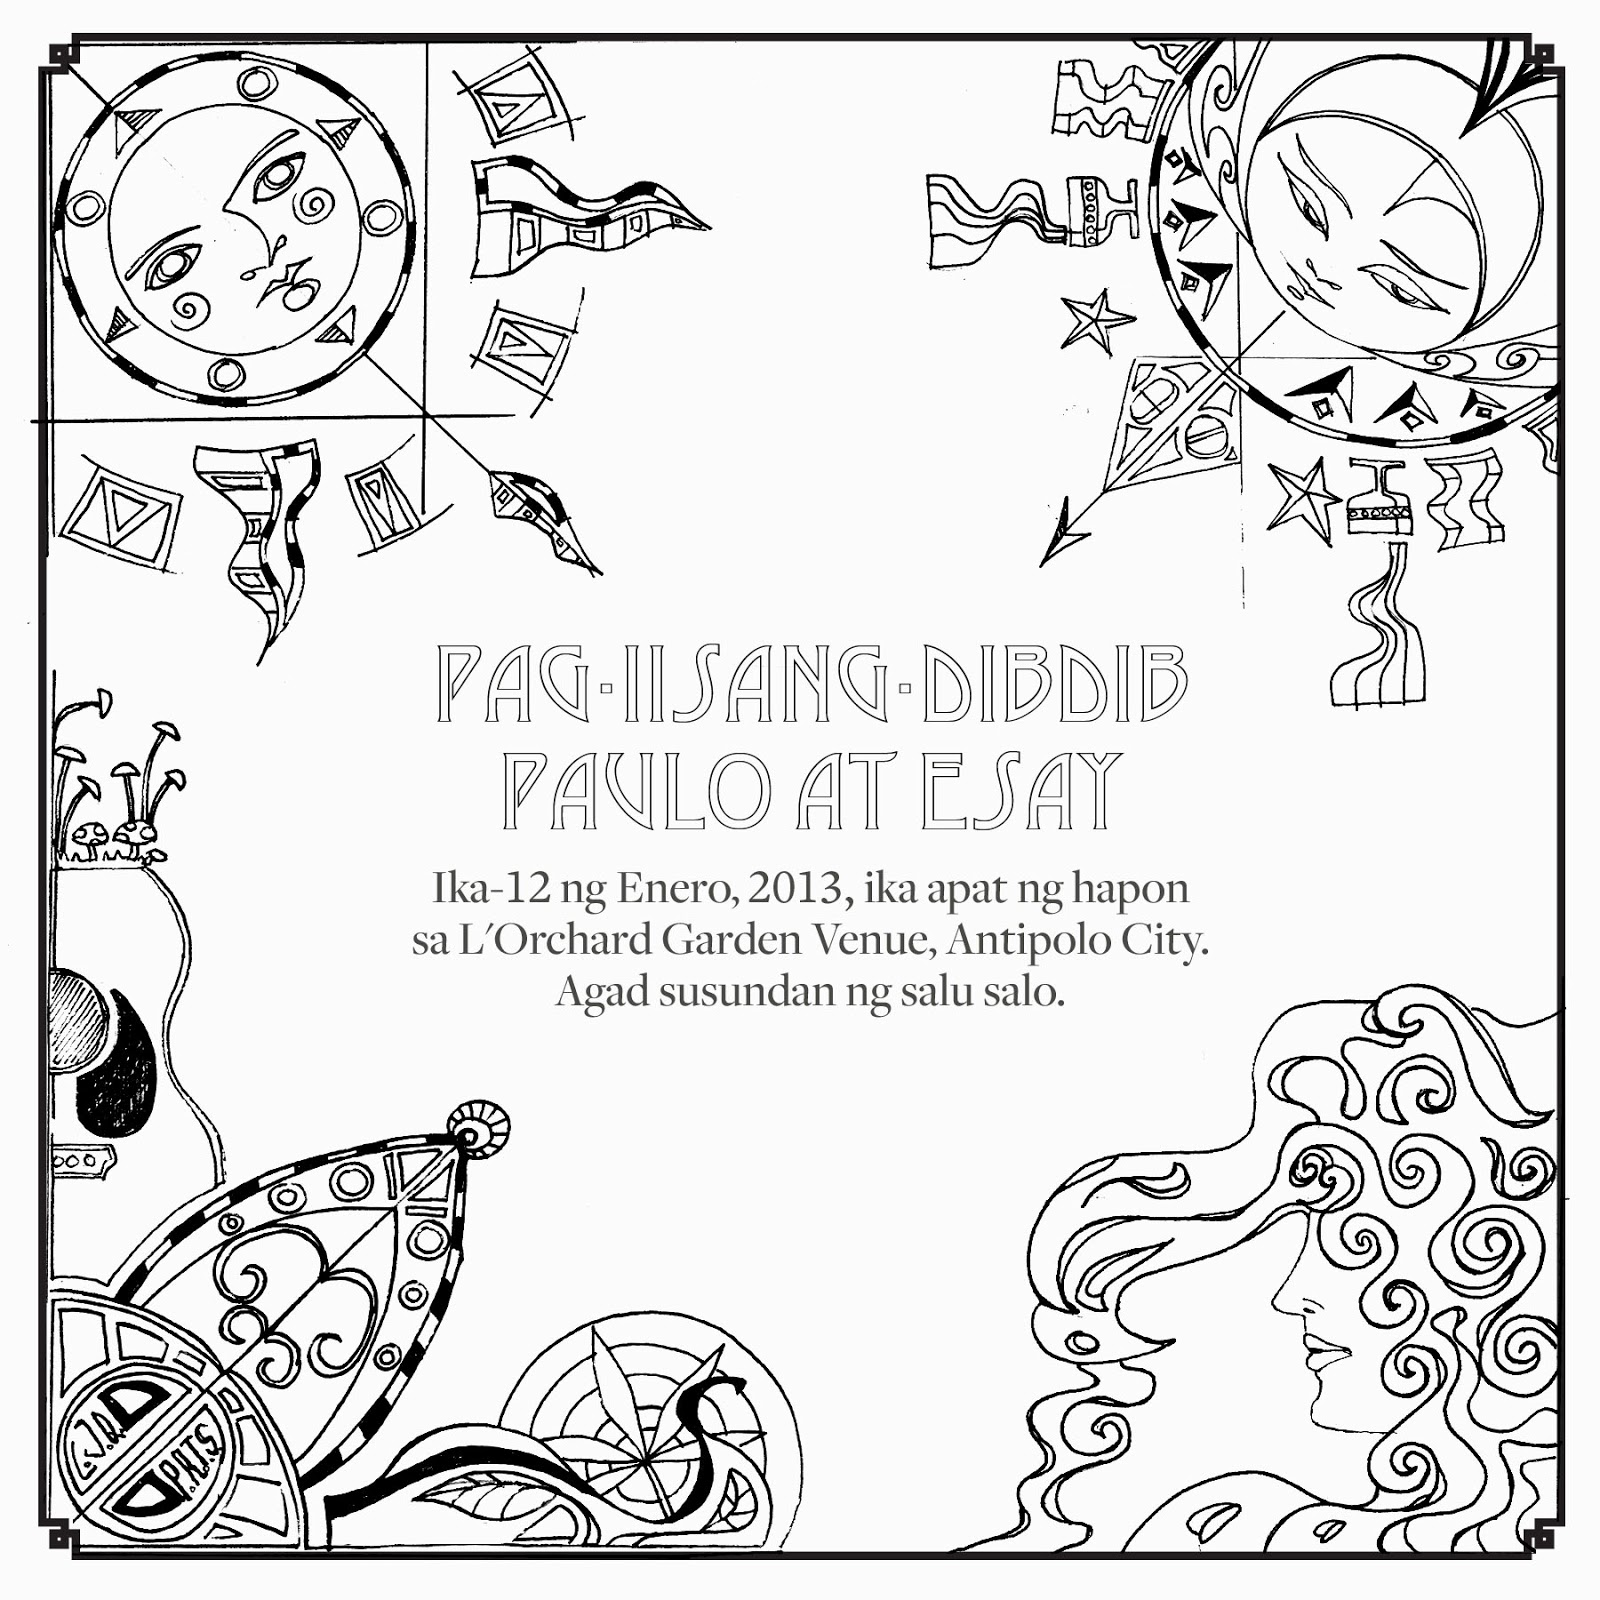 Practical pinay our tagalog wedding invitation wedding invitation in filipino tagalog artwork by paulo subido stopboris Image collections